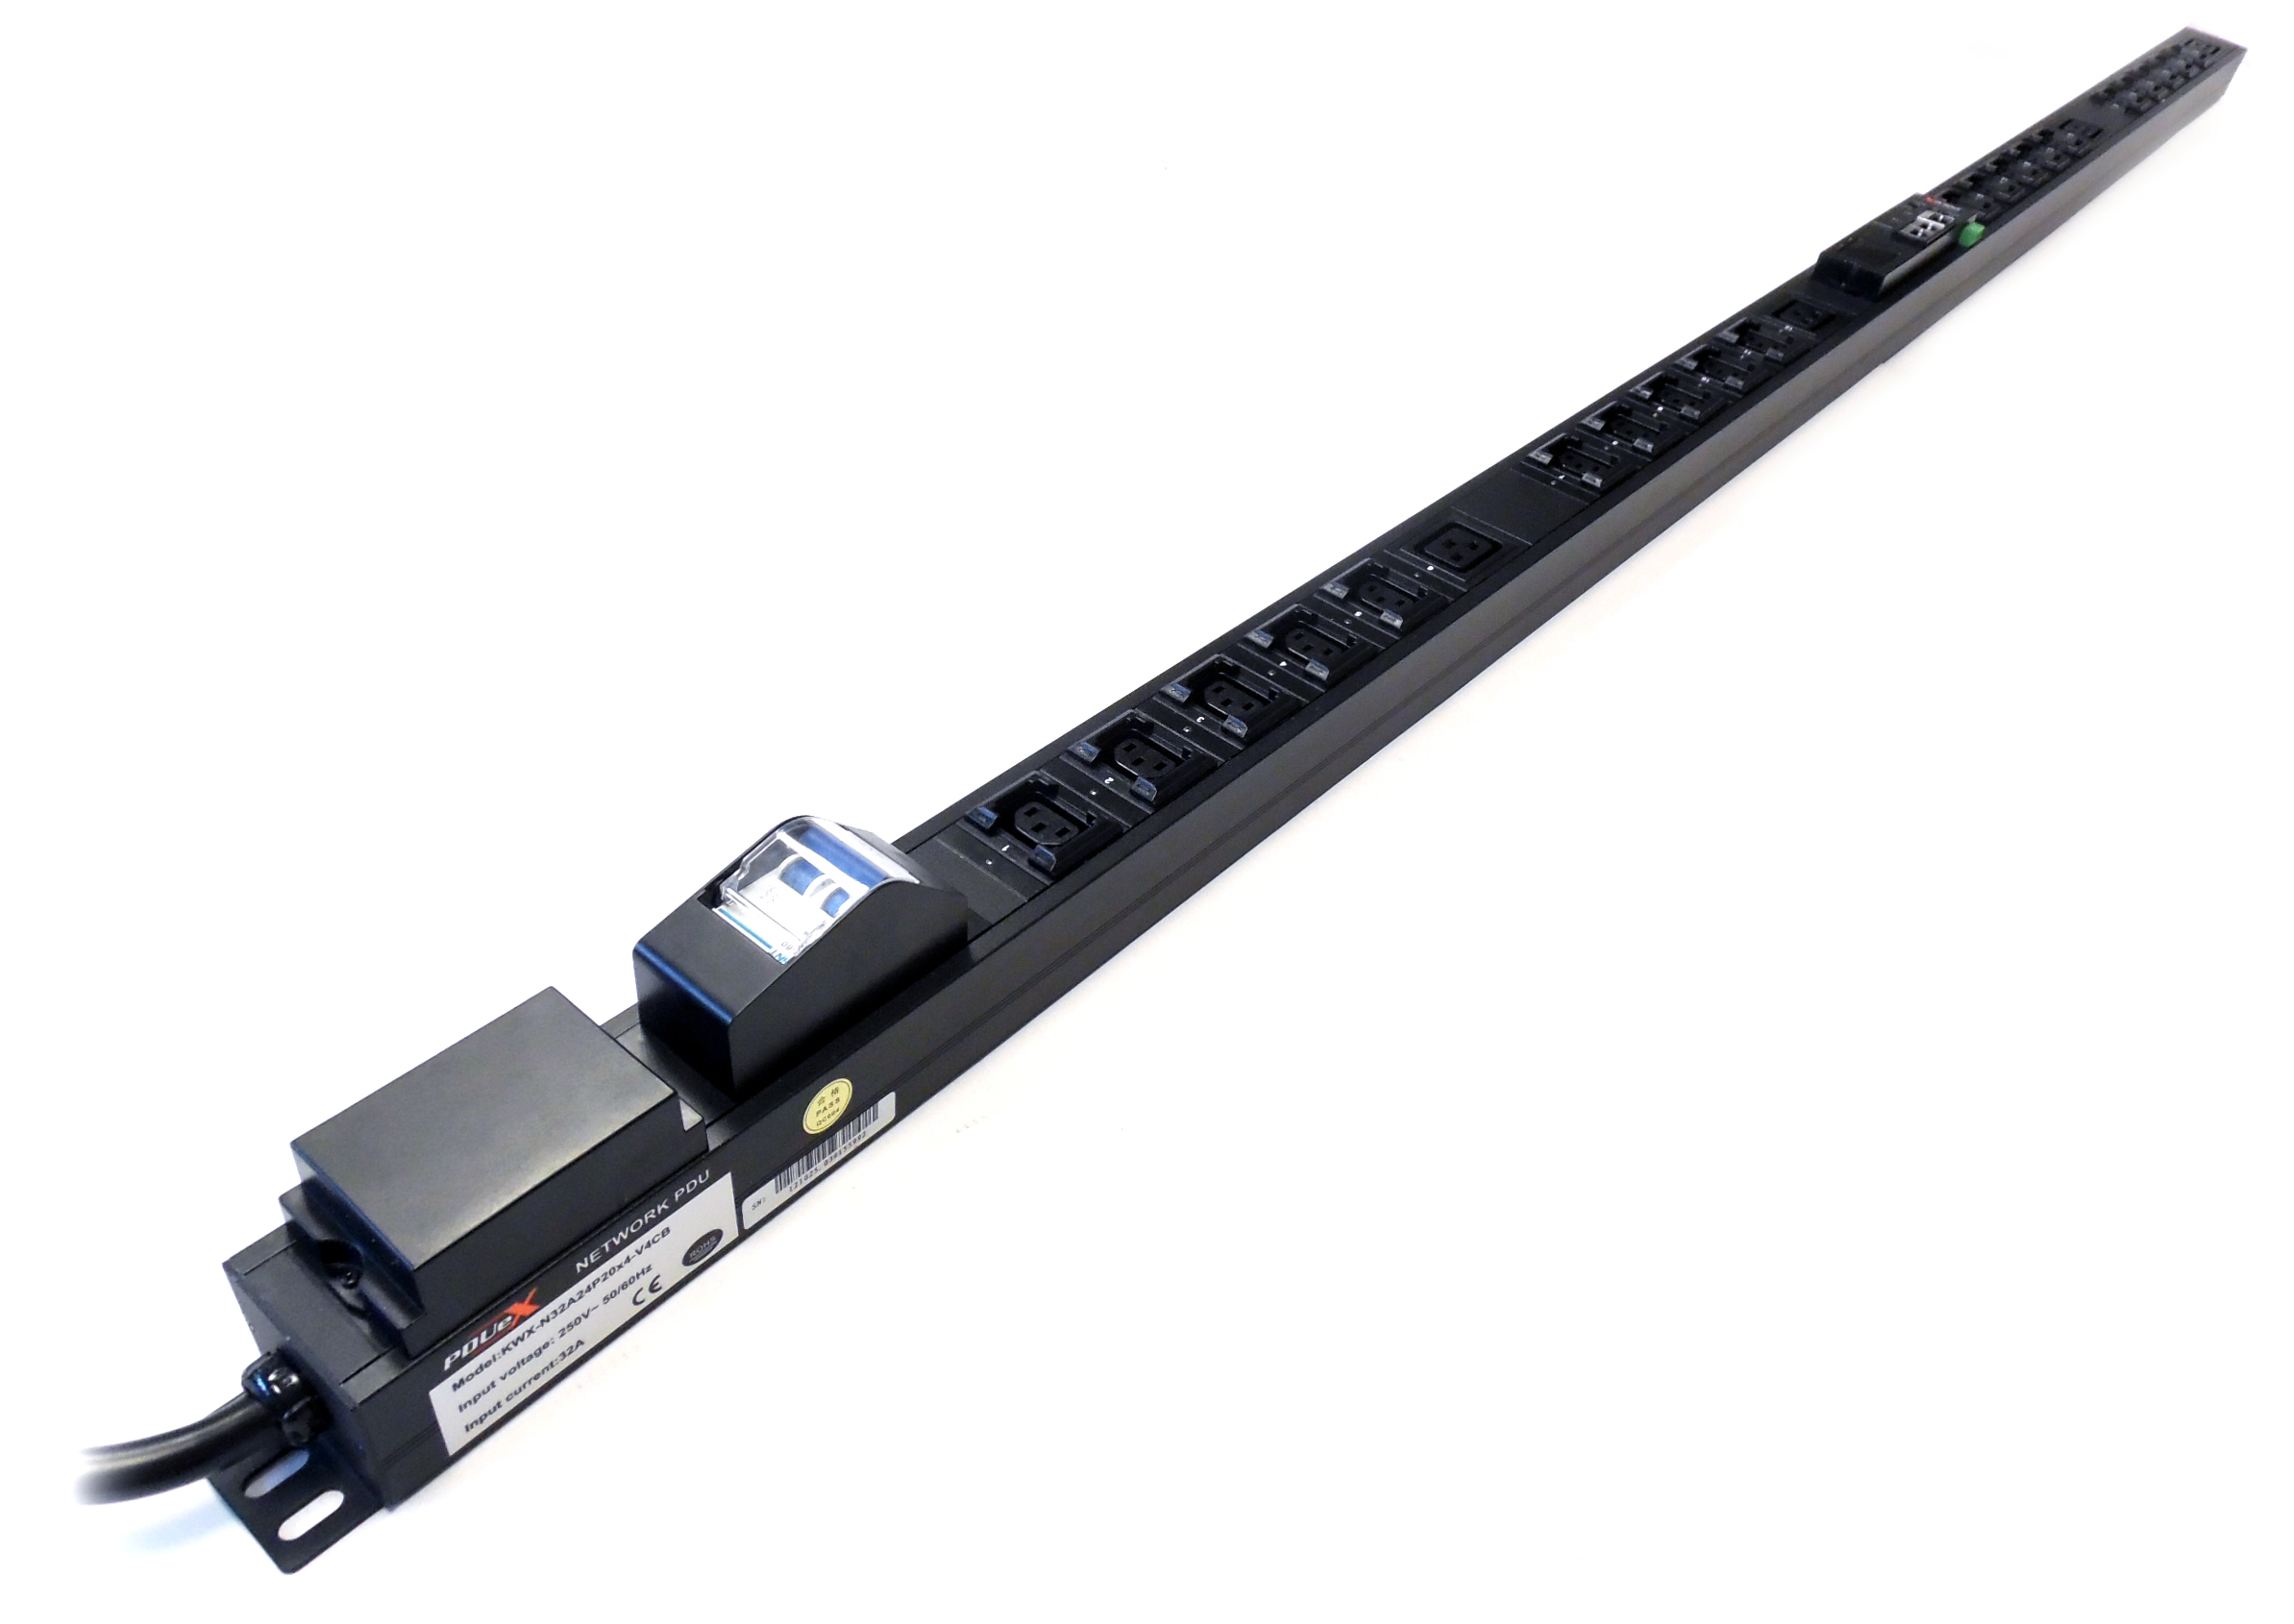 0U Rack Mountable PDU - Per Outlet Switching & Monitoring